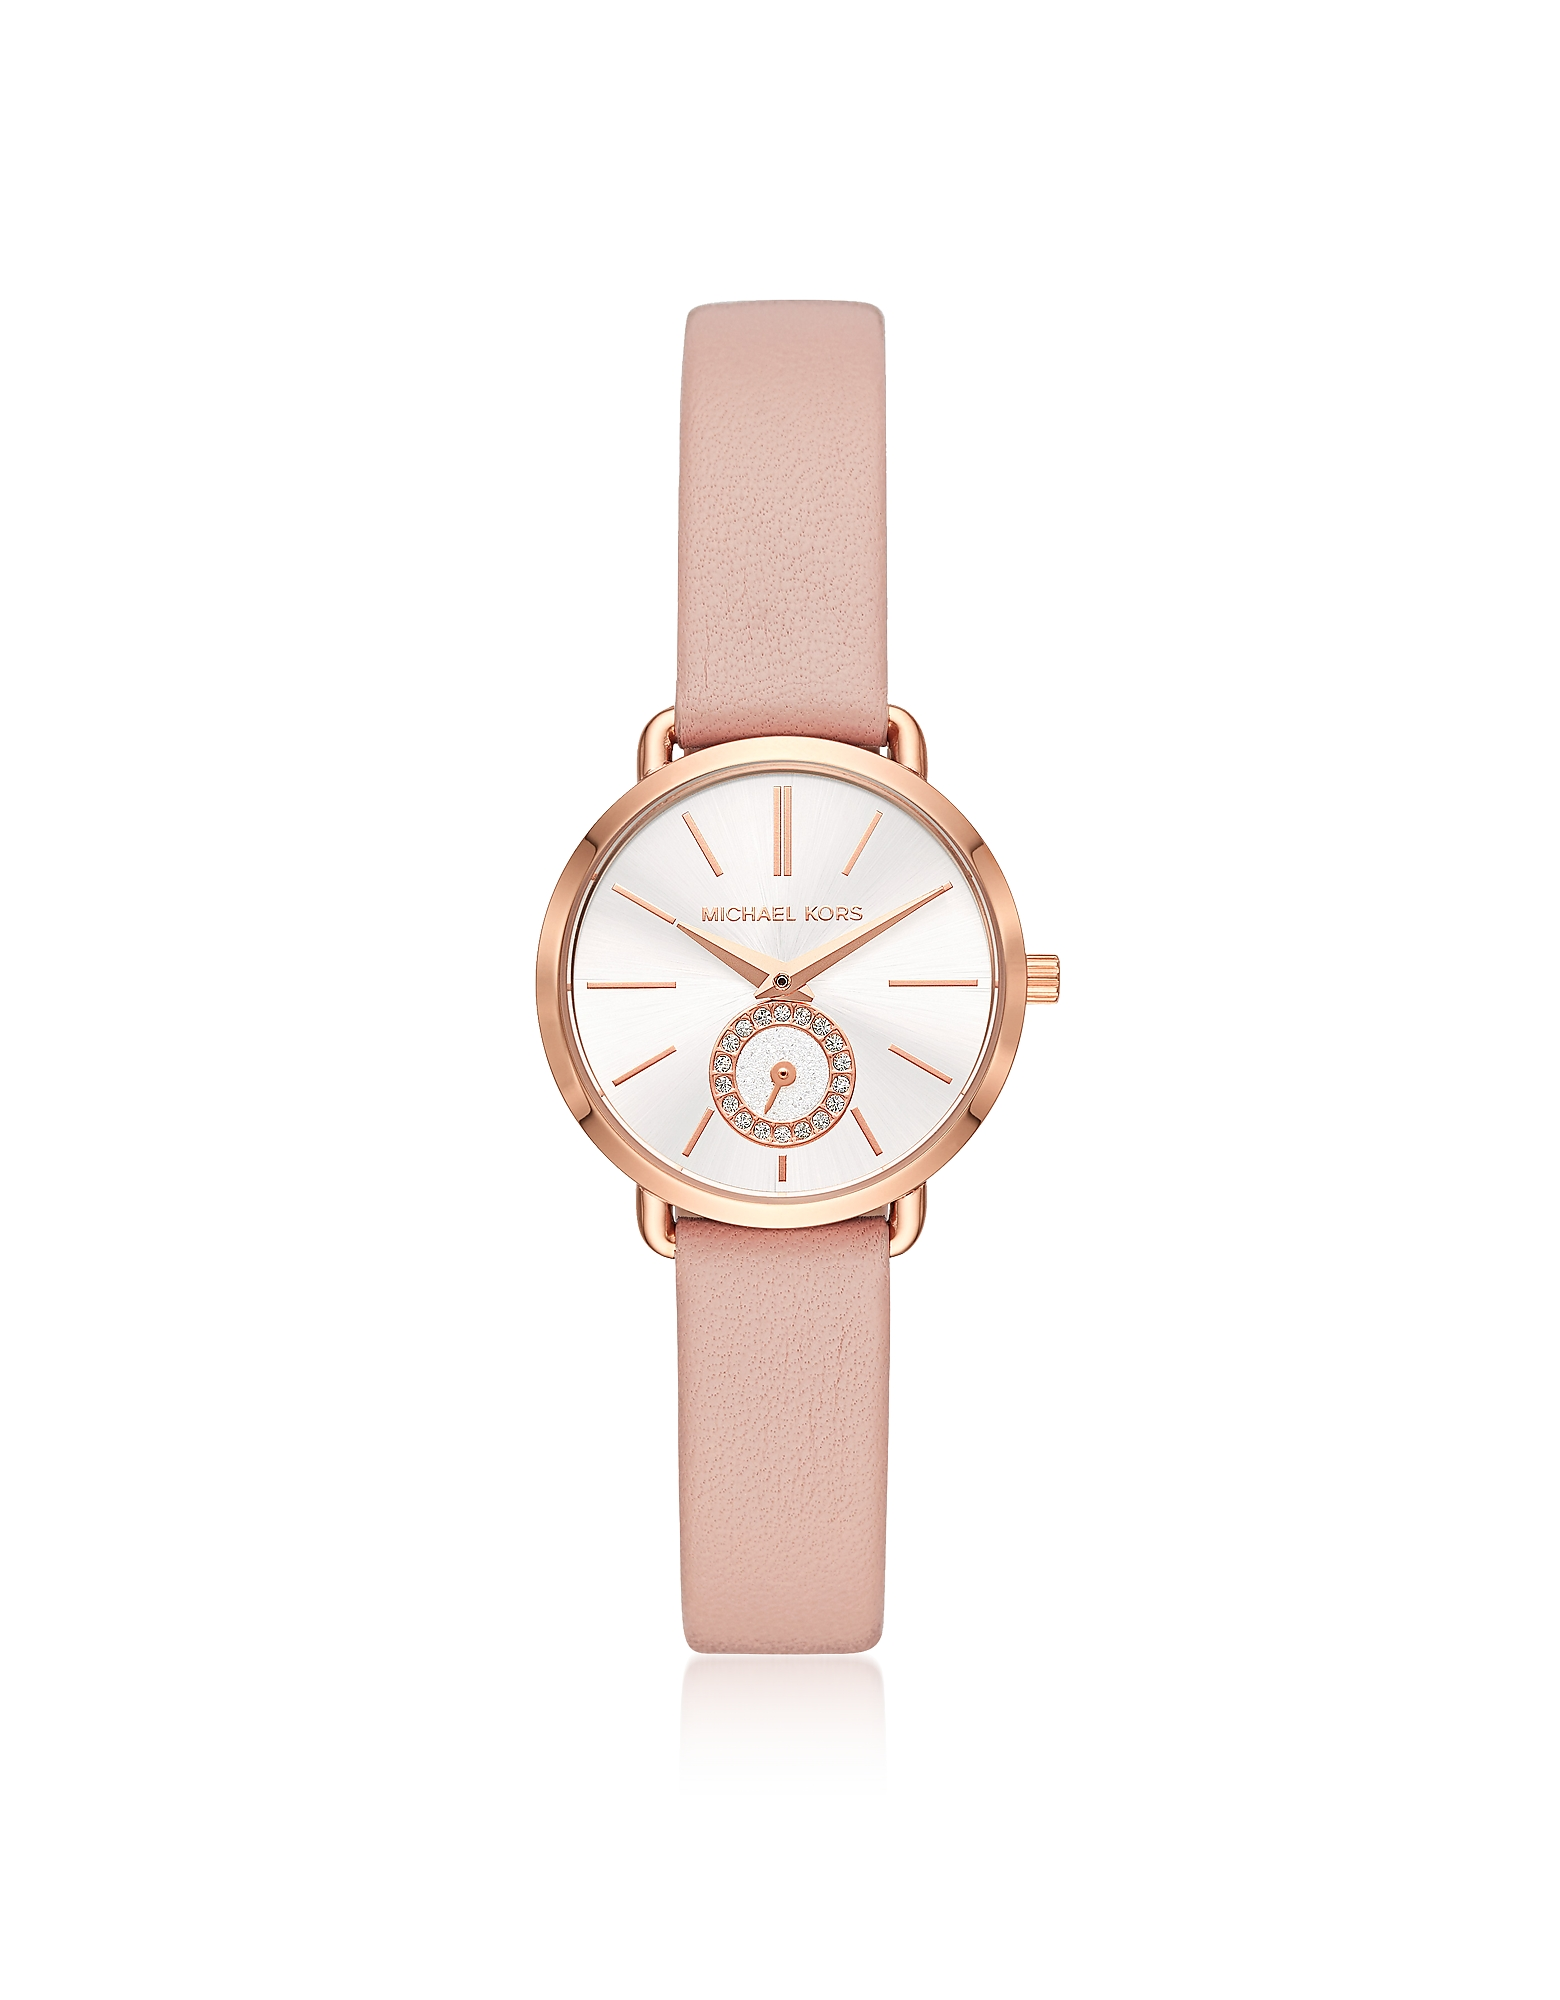 Michael Kors Michael Kors Women's Rose Gold-Tone and Blush Leather Portia Watch